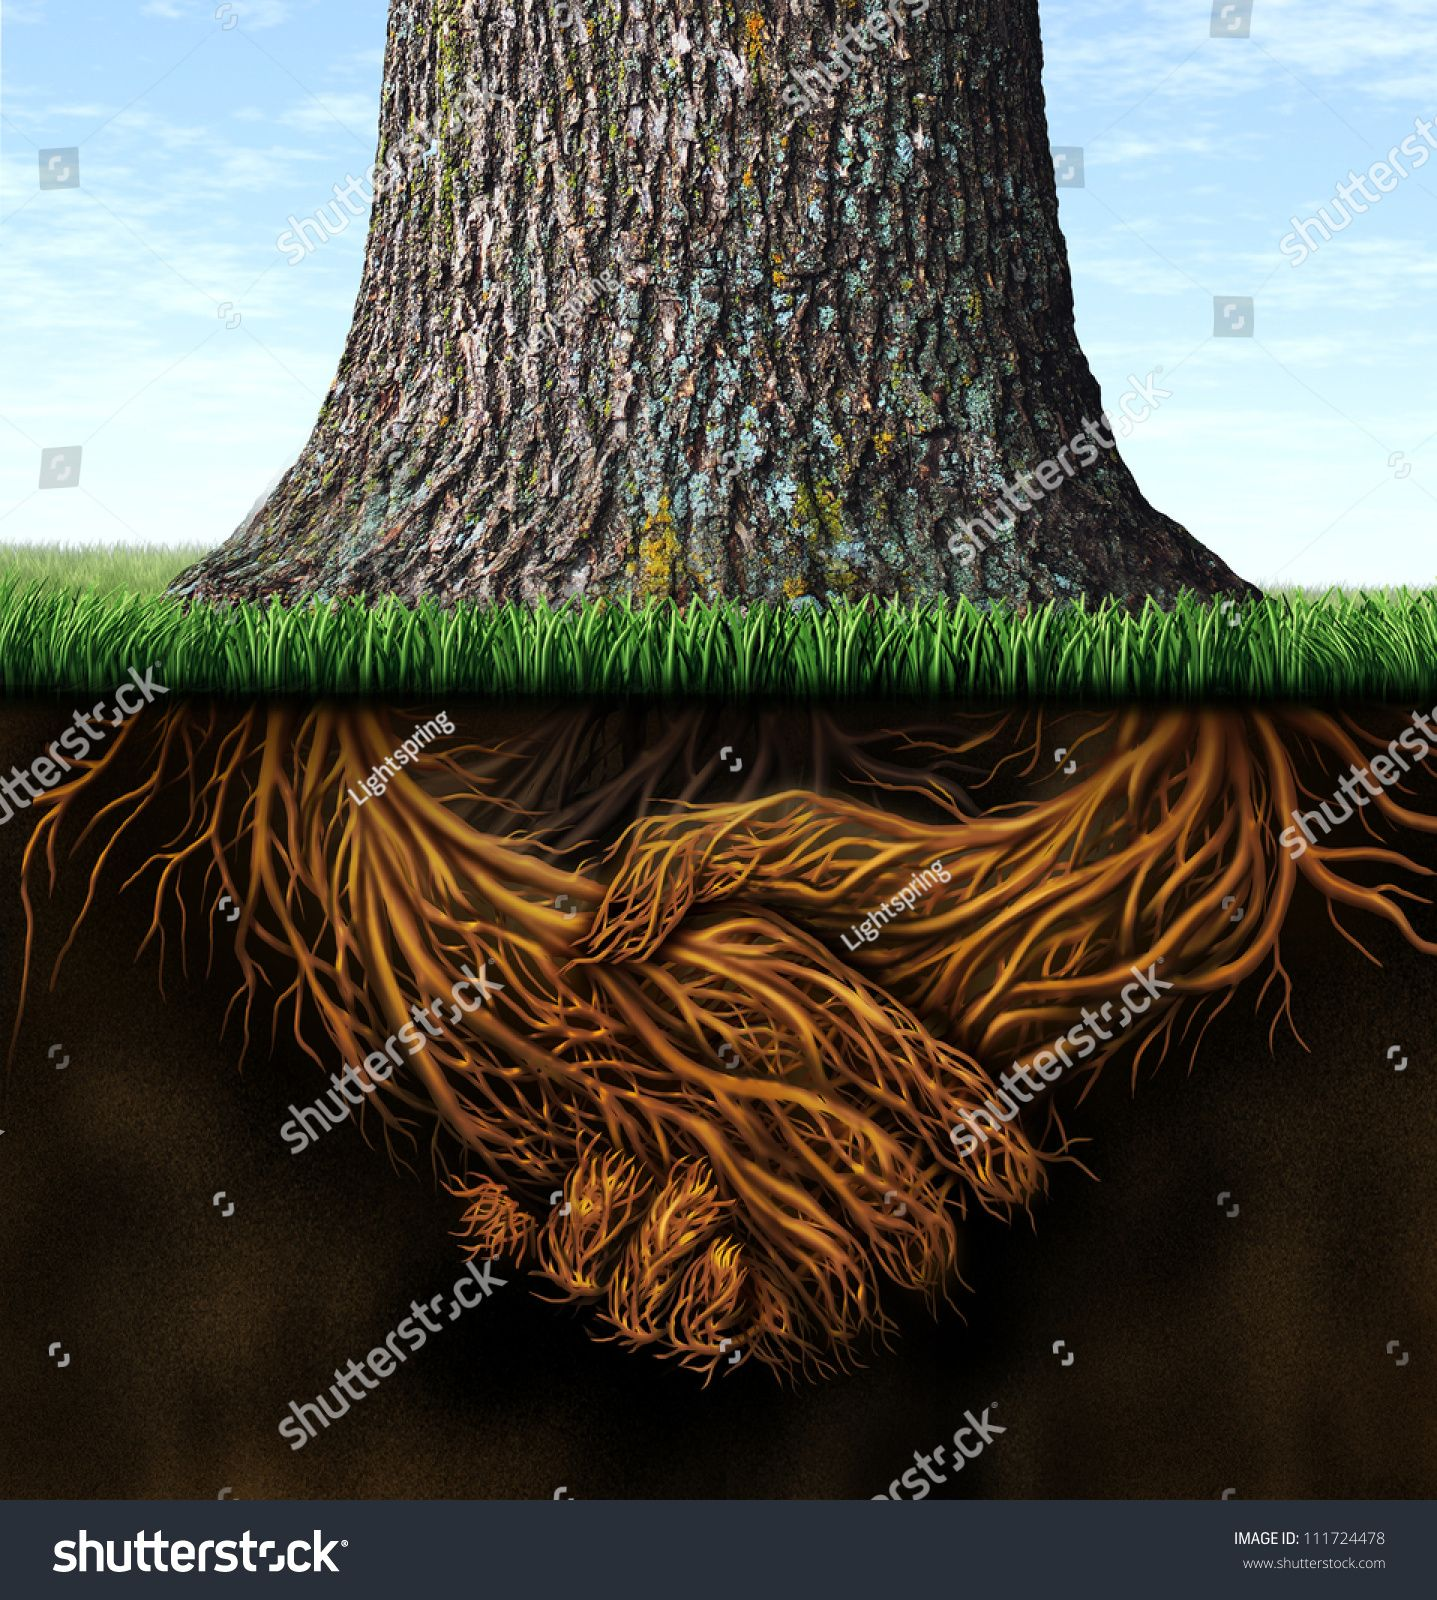 Strong deep business roots as a tree trunk with the root